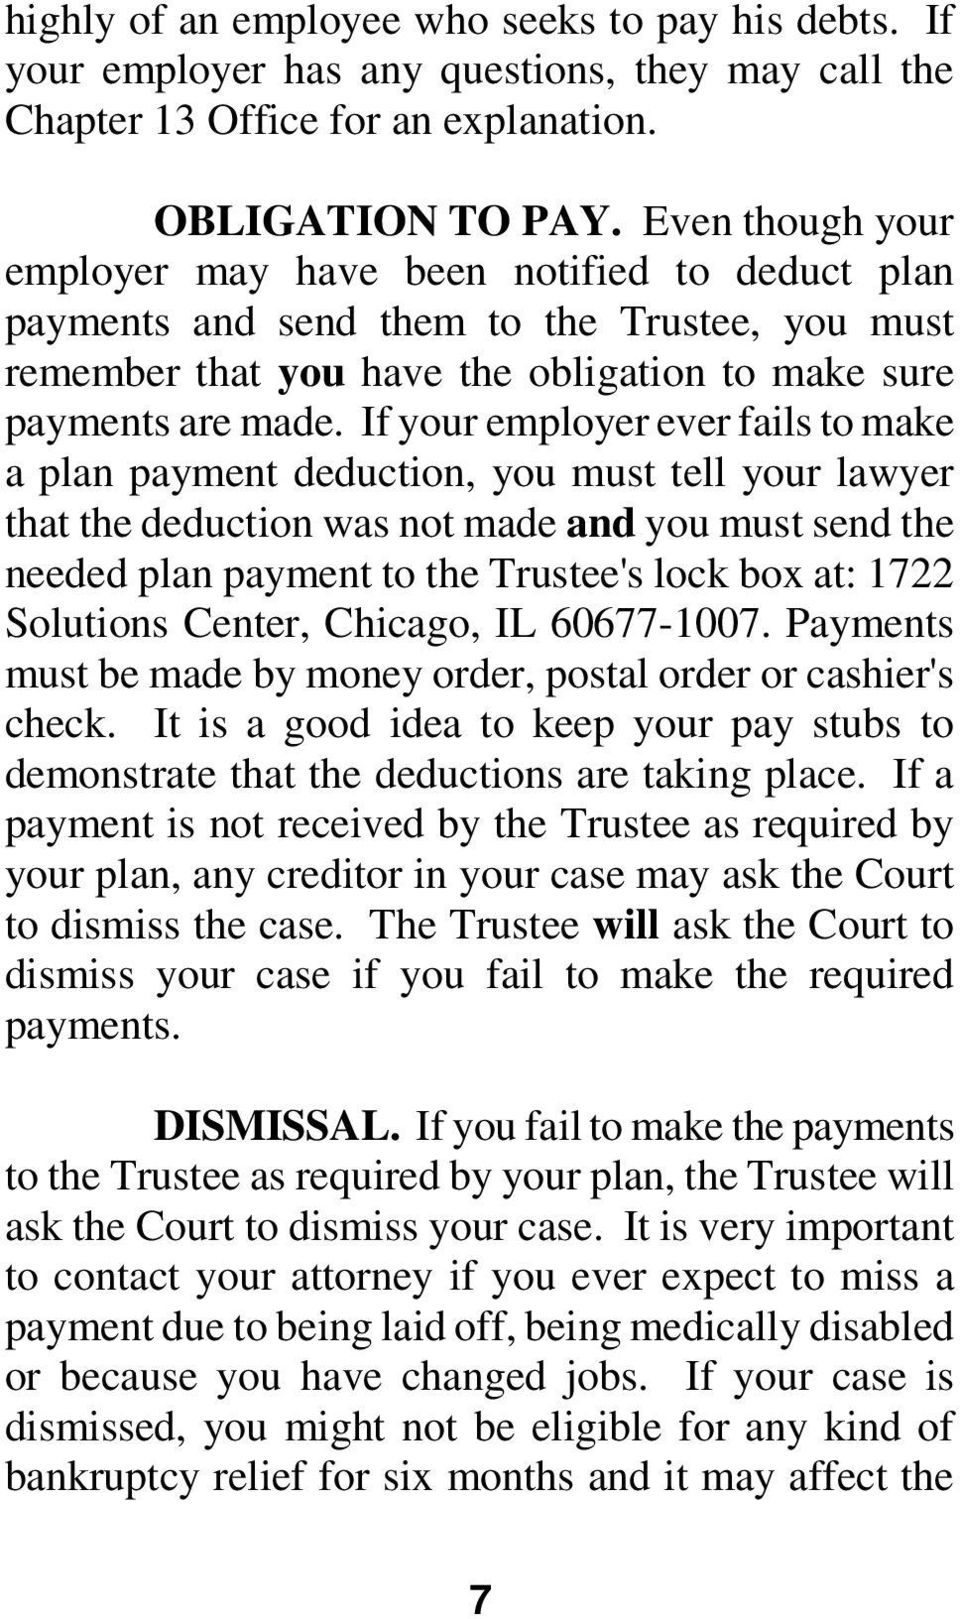 If your employer ever fails to make a plan payment deduction, you must tell your lawyer that the deduction was not made and you must send the needed plan payment to the Trustee's lock box at: 1722